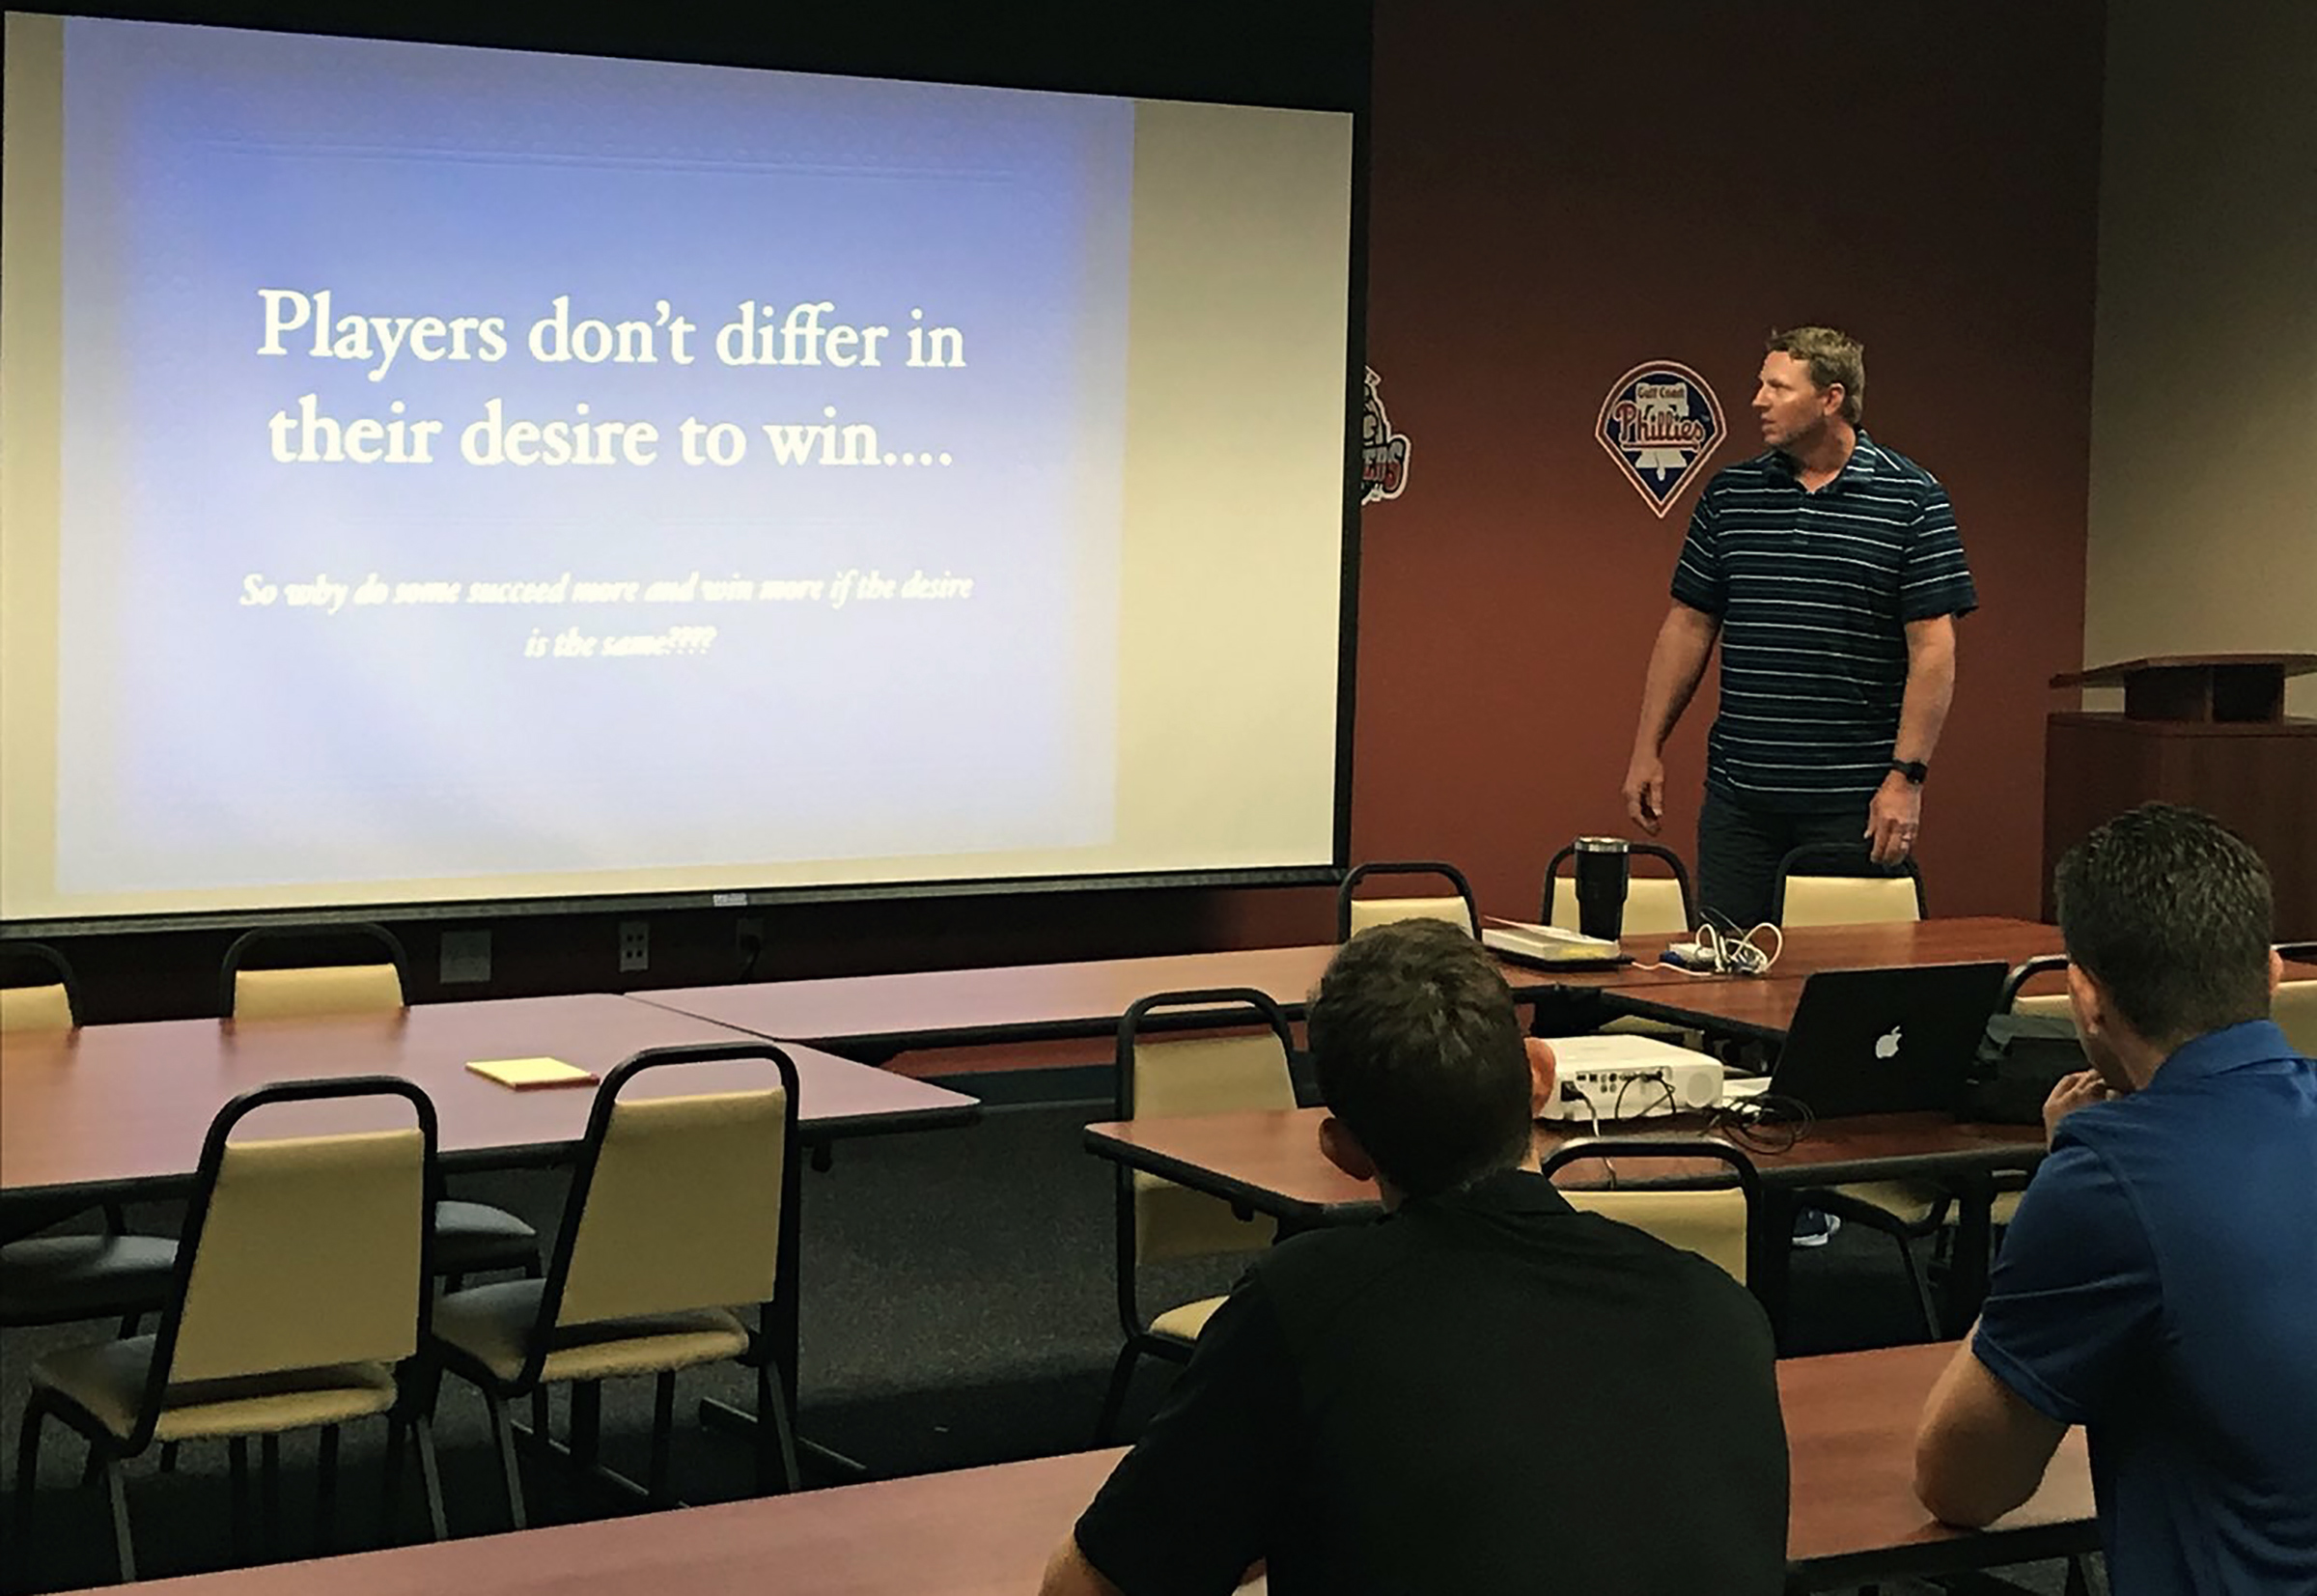 Roy Halladay on Monday, a day before he died, giving a lecture to Phillies minor leaguers in Clearwater.